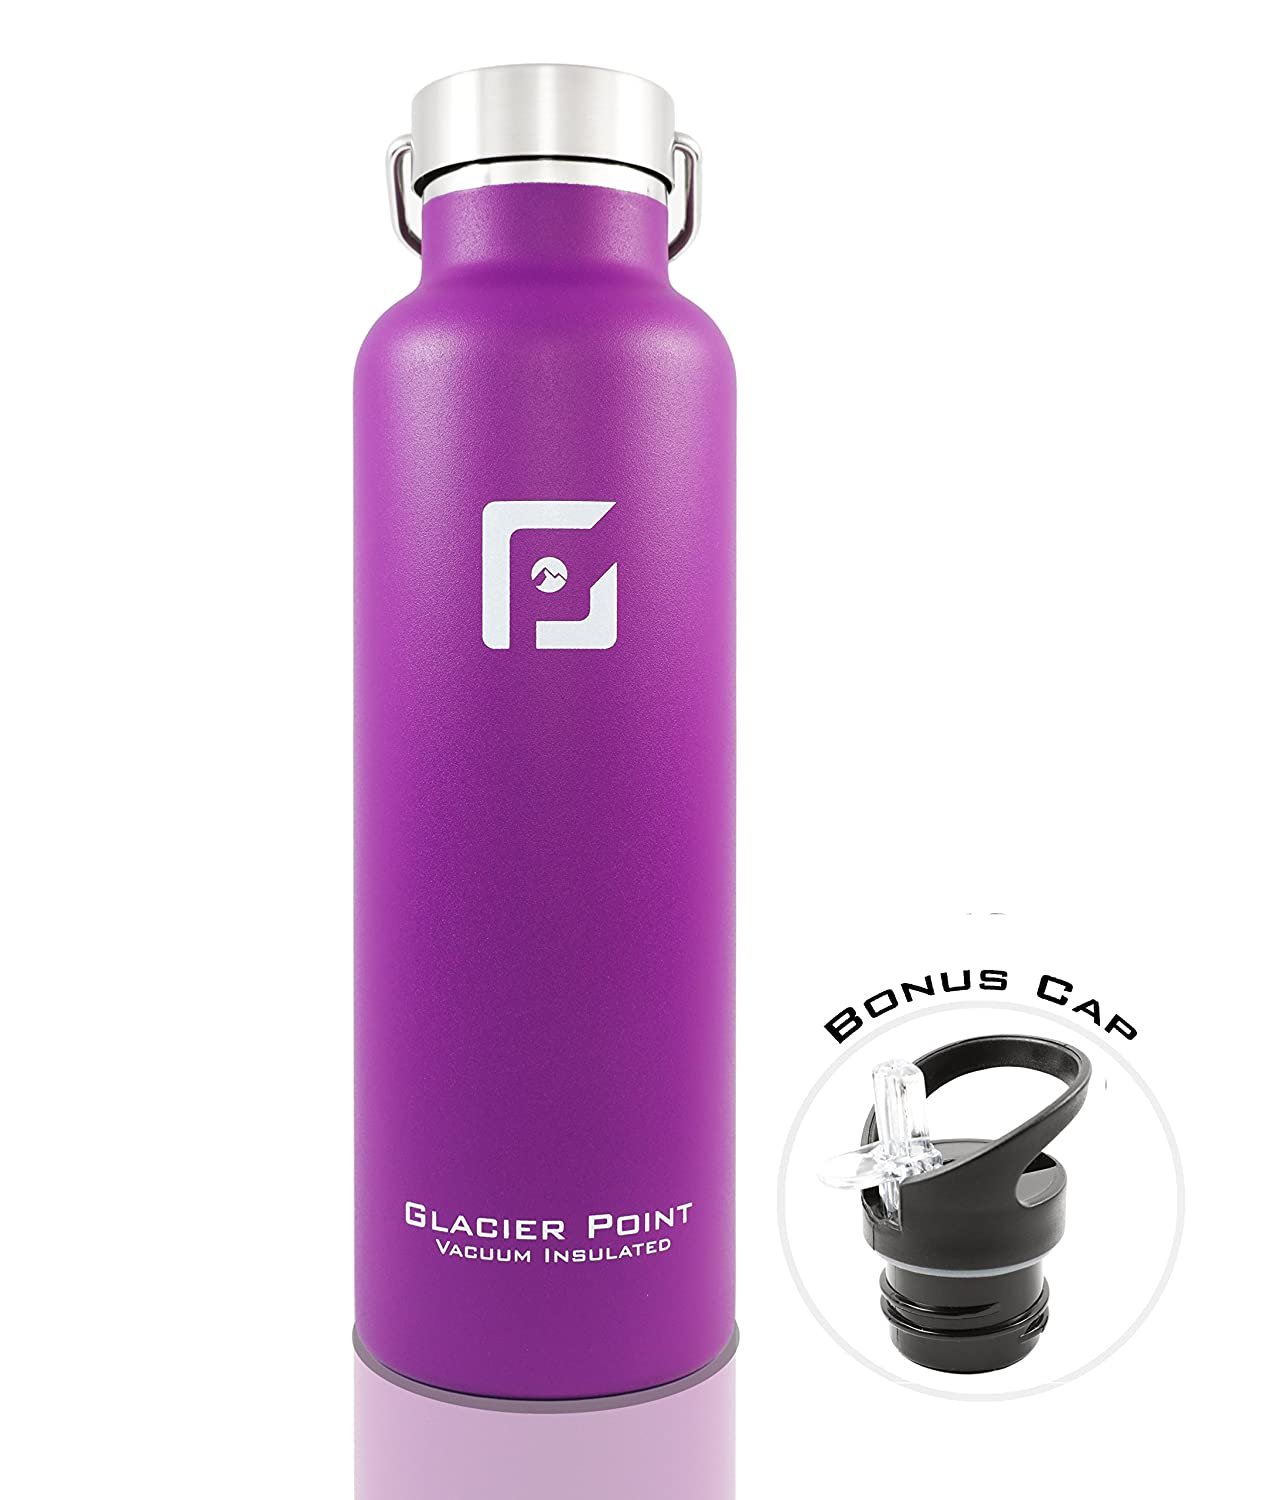 511e6e820c ... Glacier Point Vacuum Insulated Stainless Steel Water Bottle (25oz /  17oz) Double Walled Construction ...